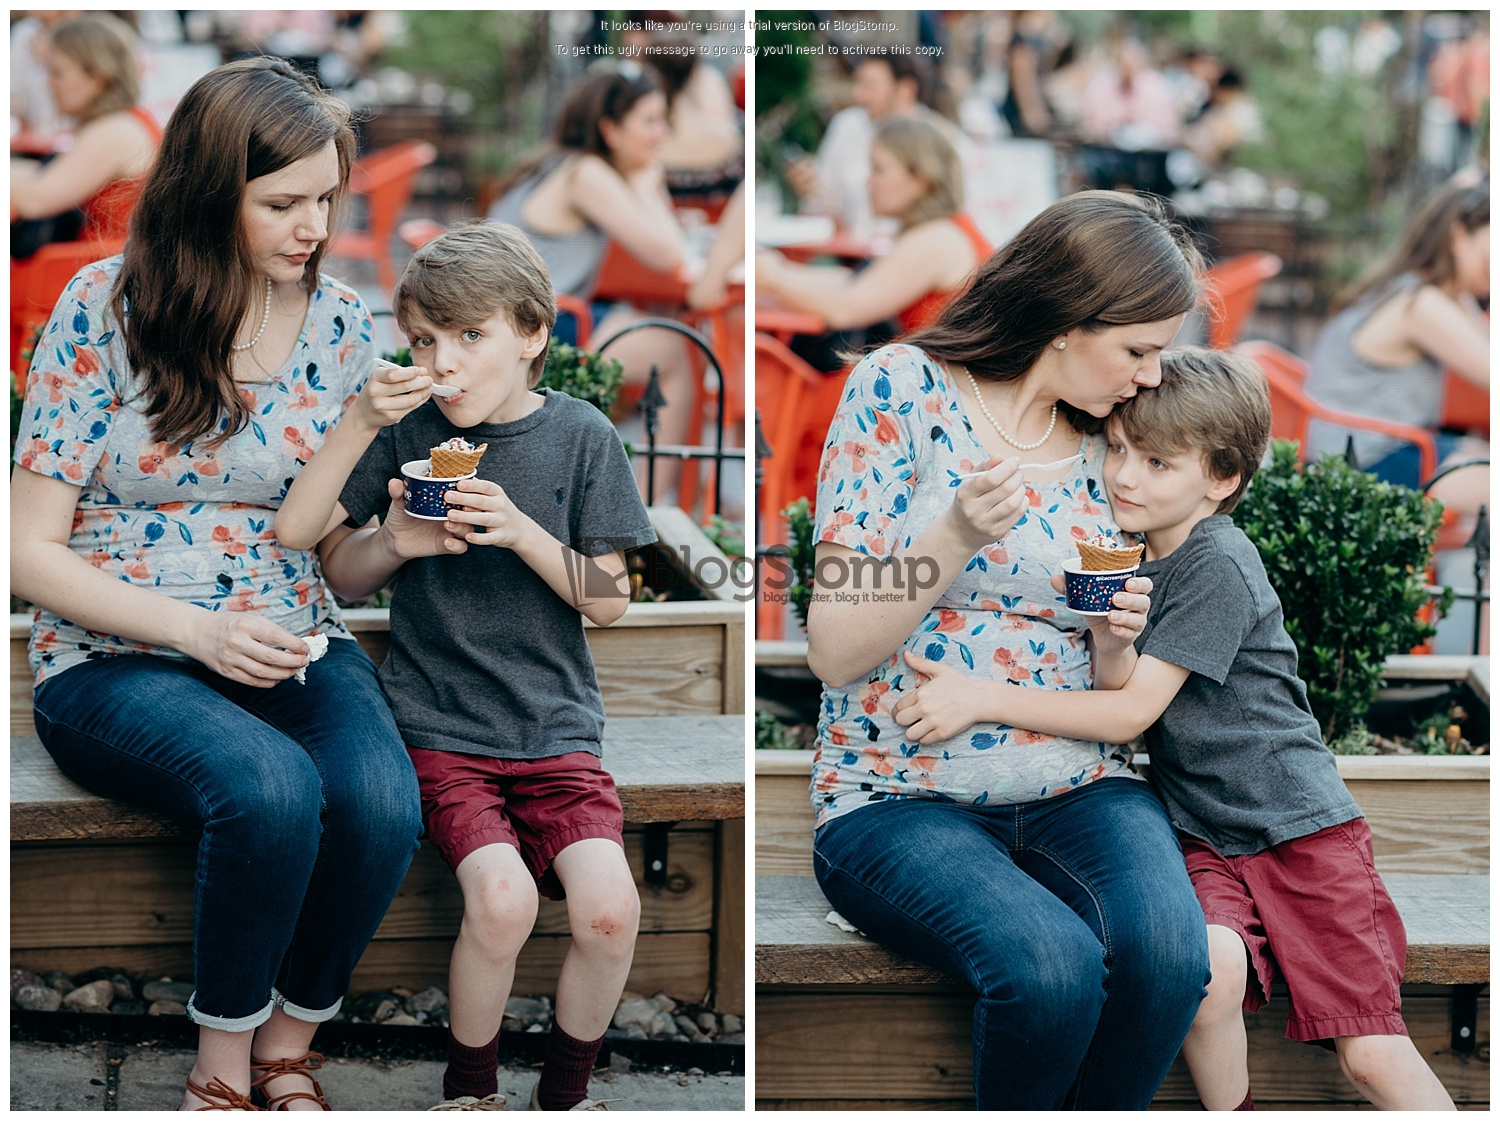 mother-son-ice-cream-date-best-family-photographer-washington-dc-lifestyle28.jpg